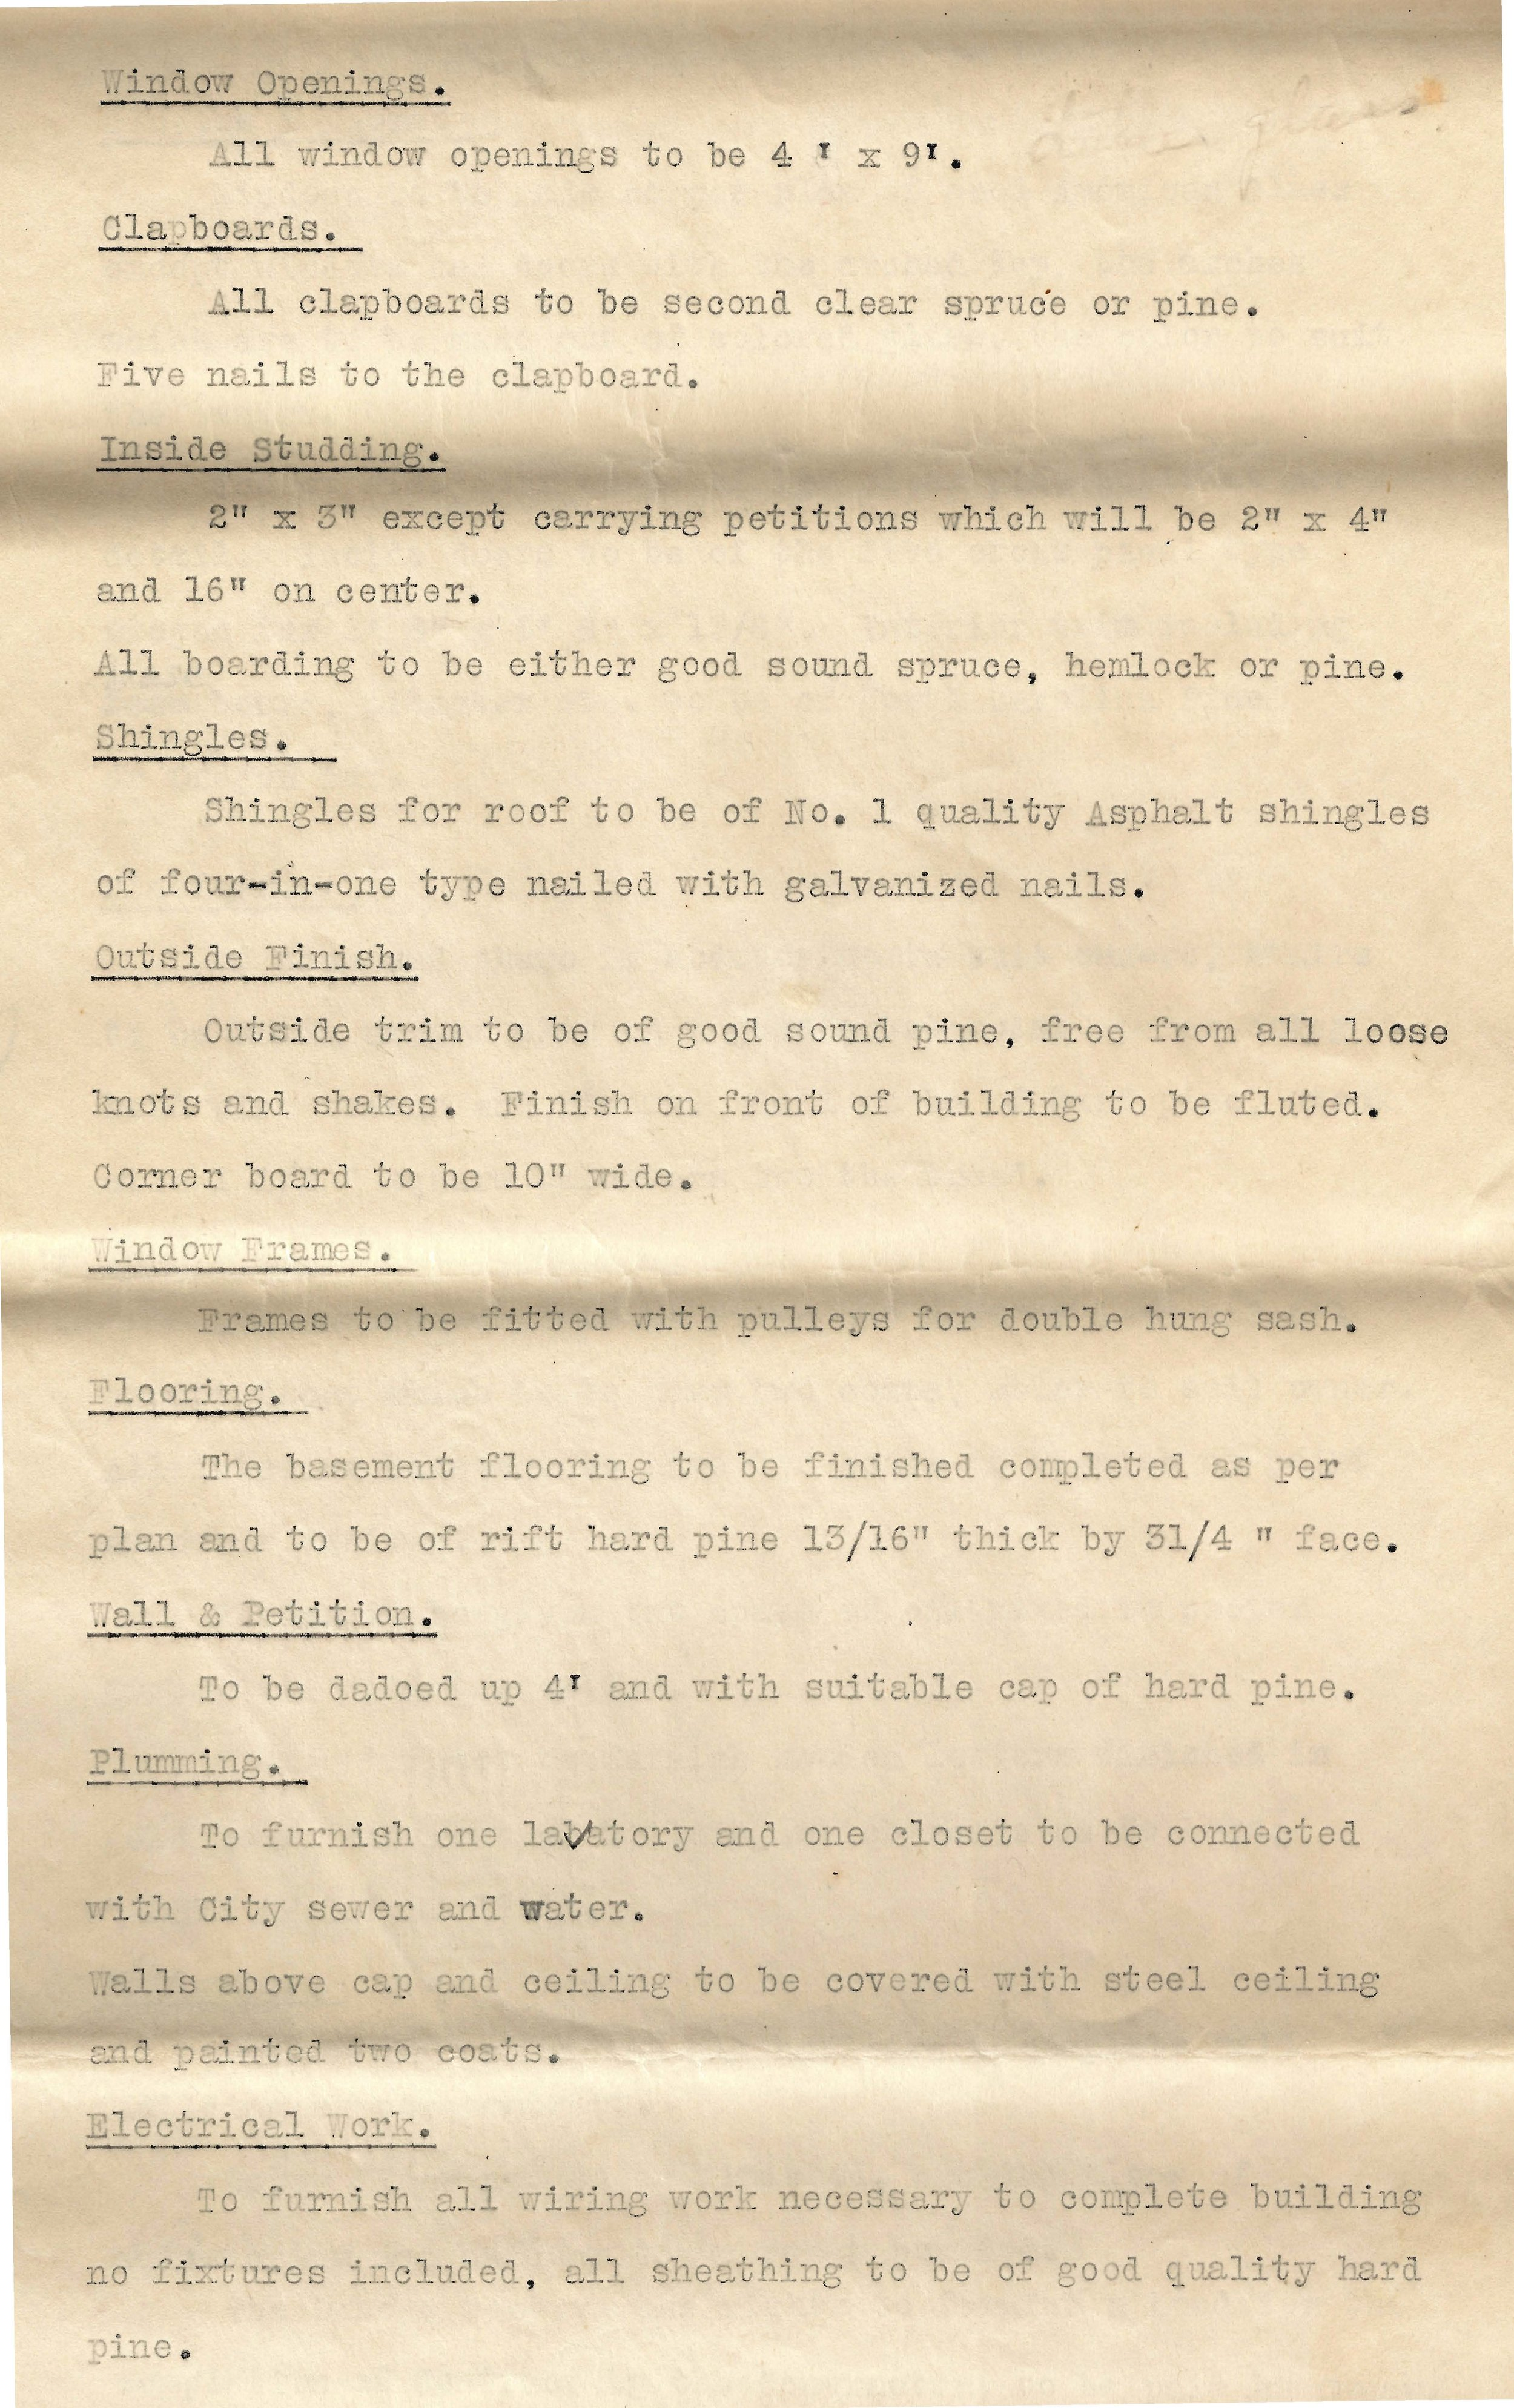 Contractor Agreement (1921)_Page_09.jpg